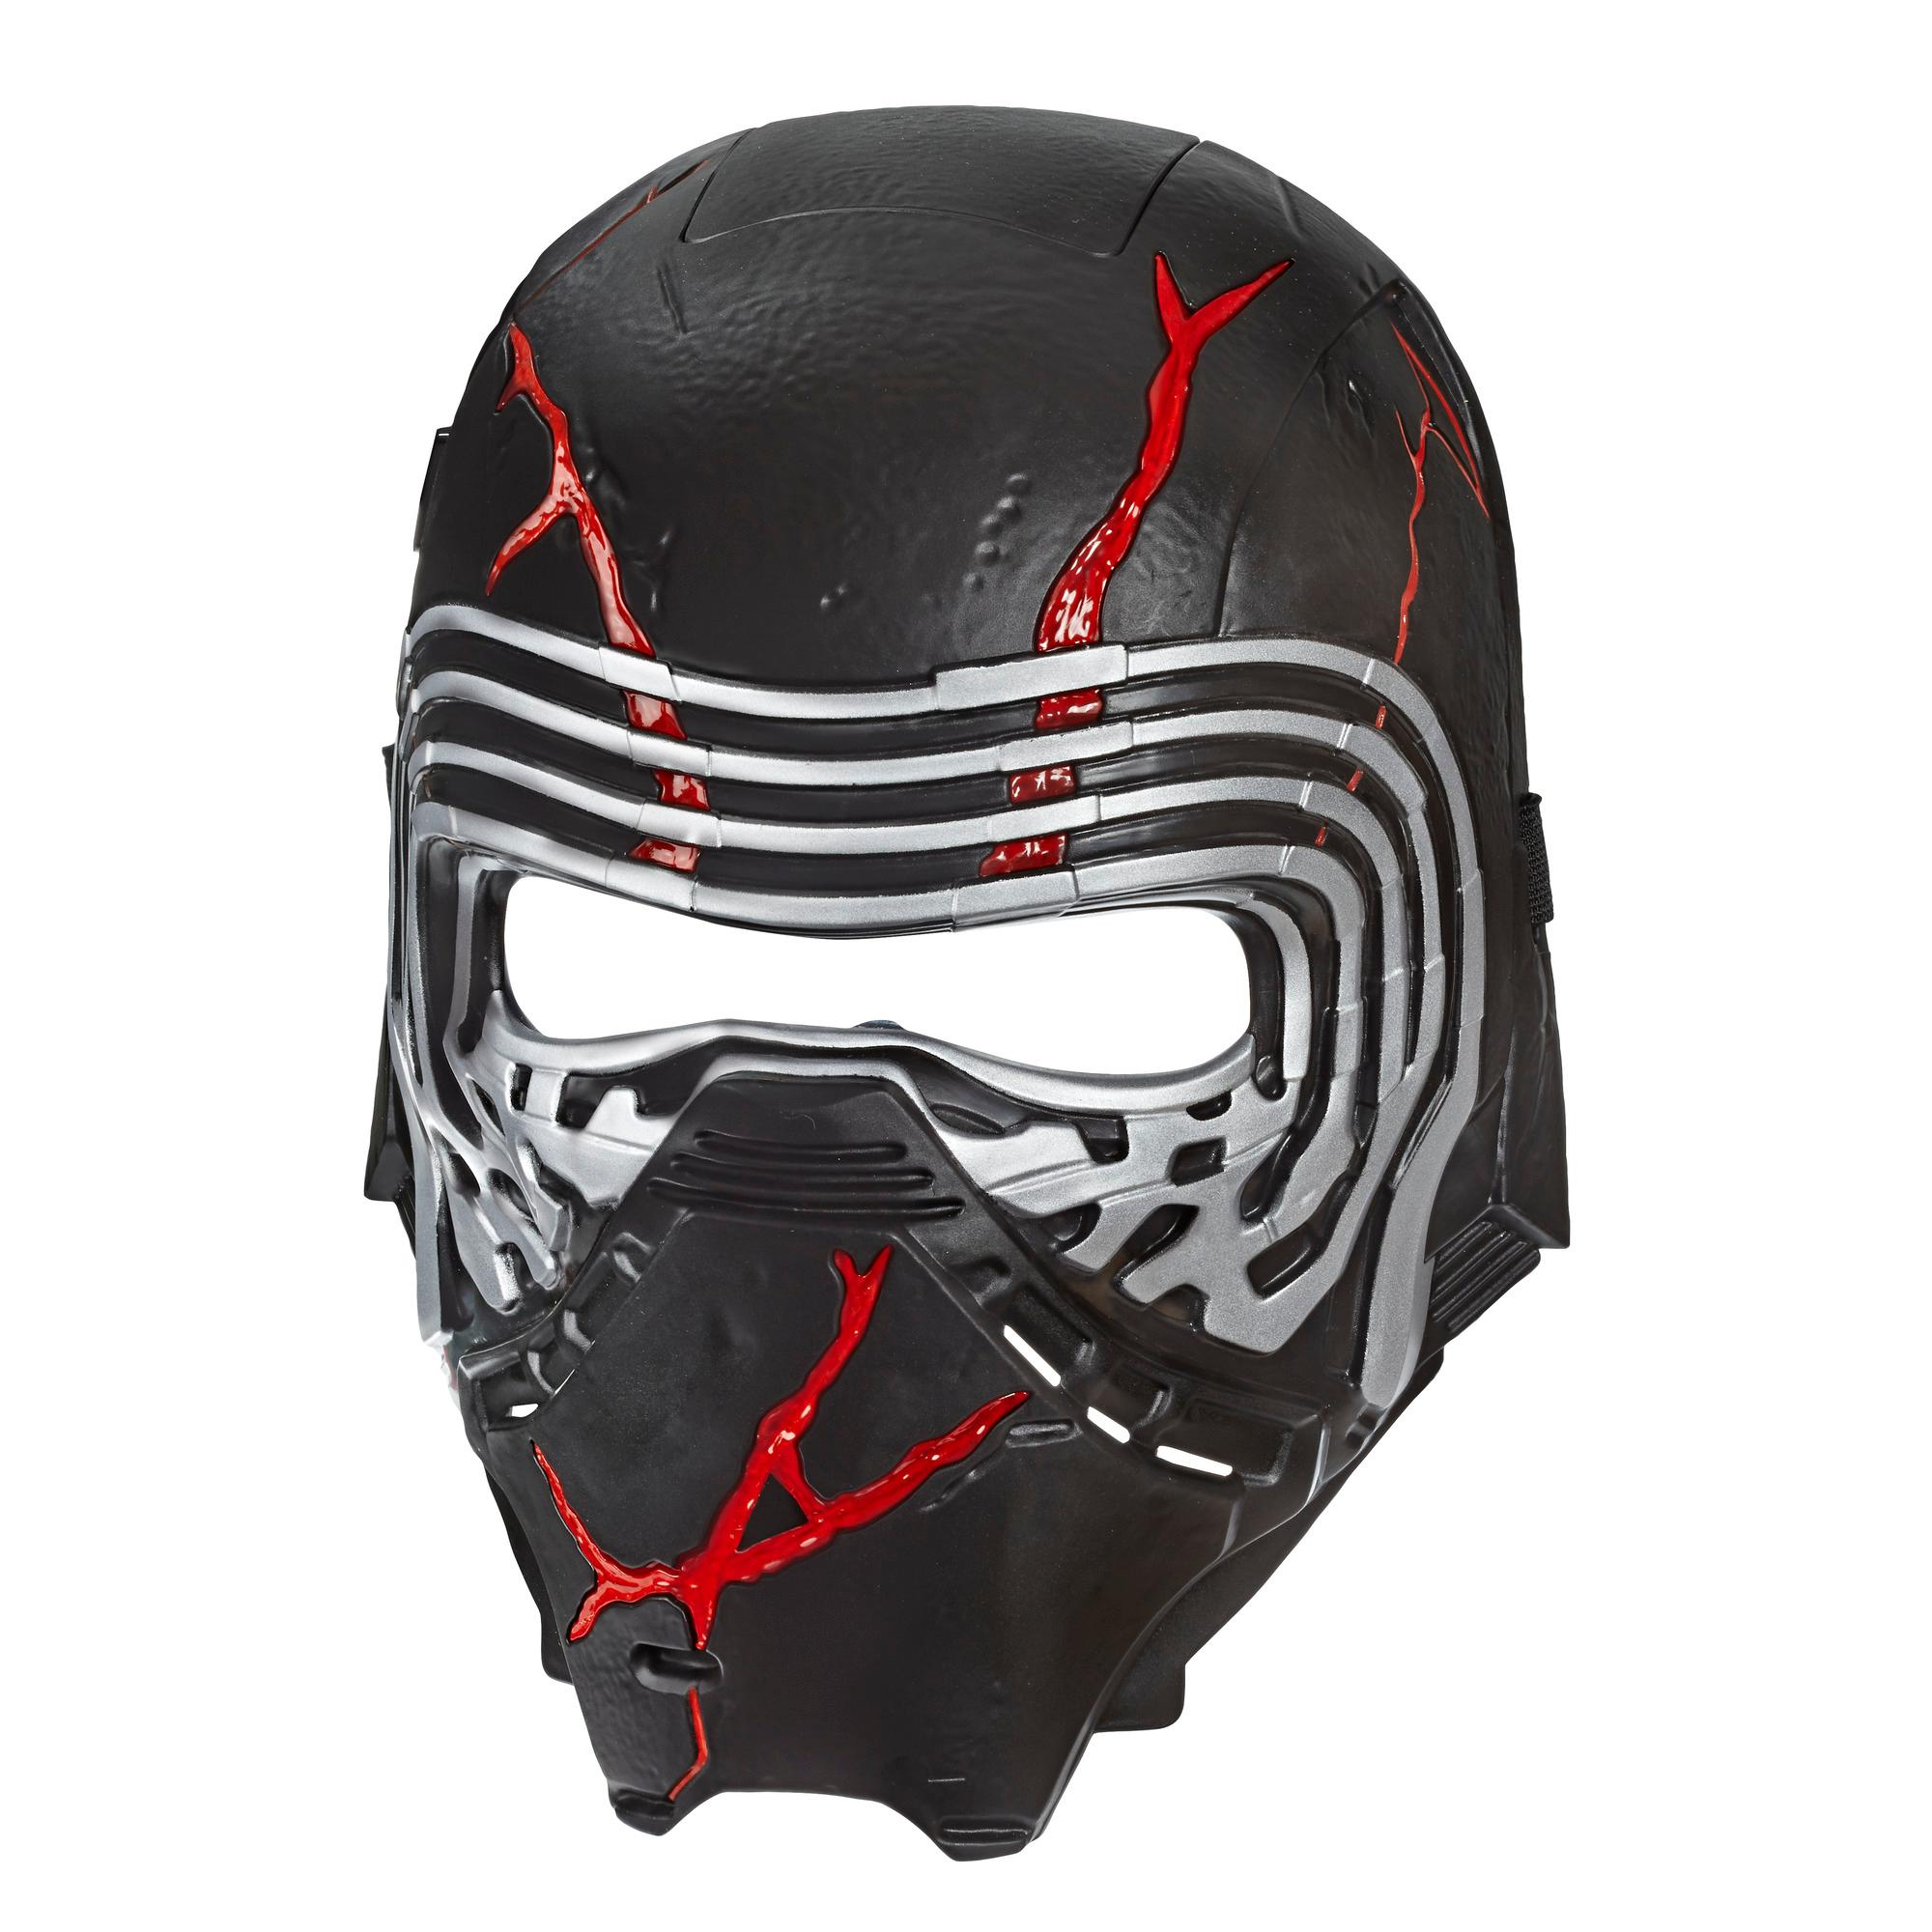 STAR WARS MÁSCARA ELECTRONICA FORCE RAGE KYLO REN